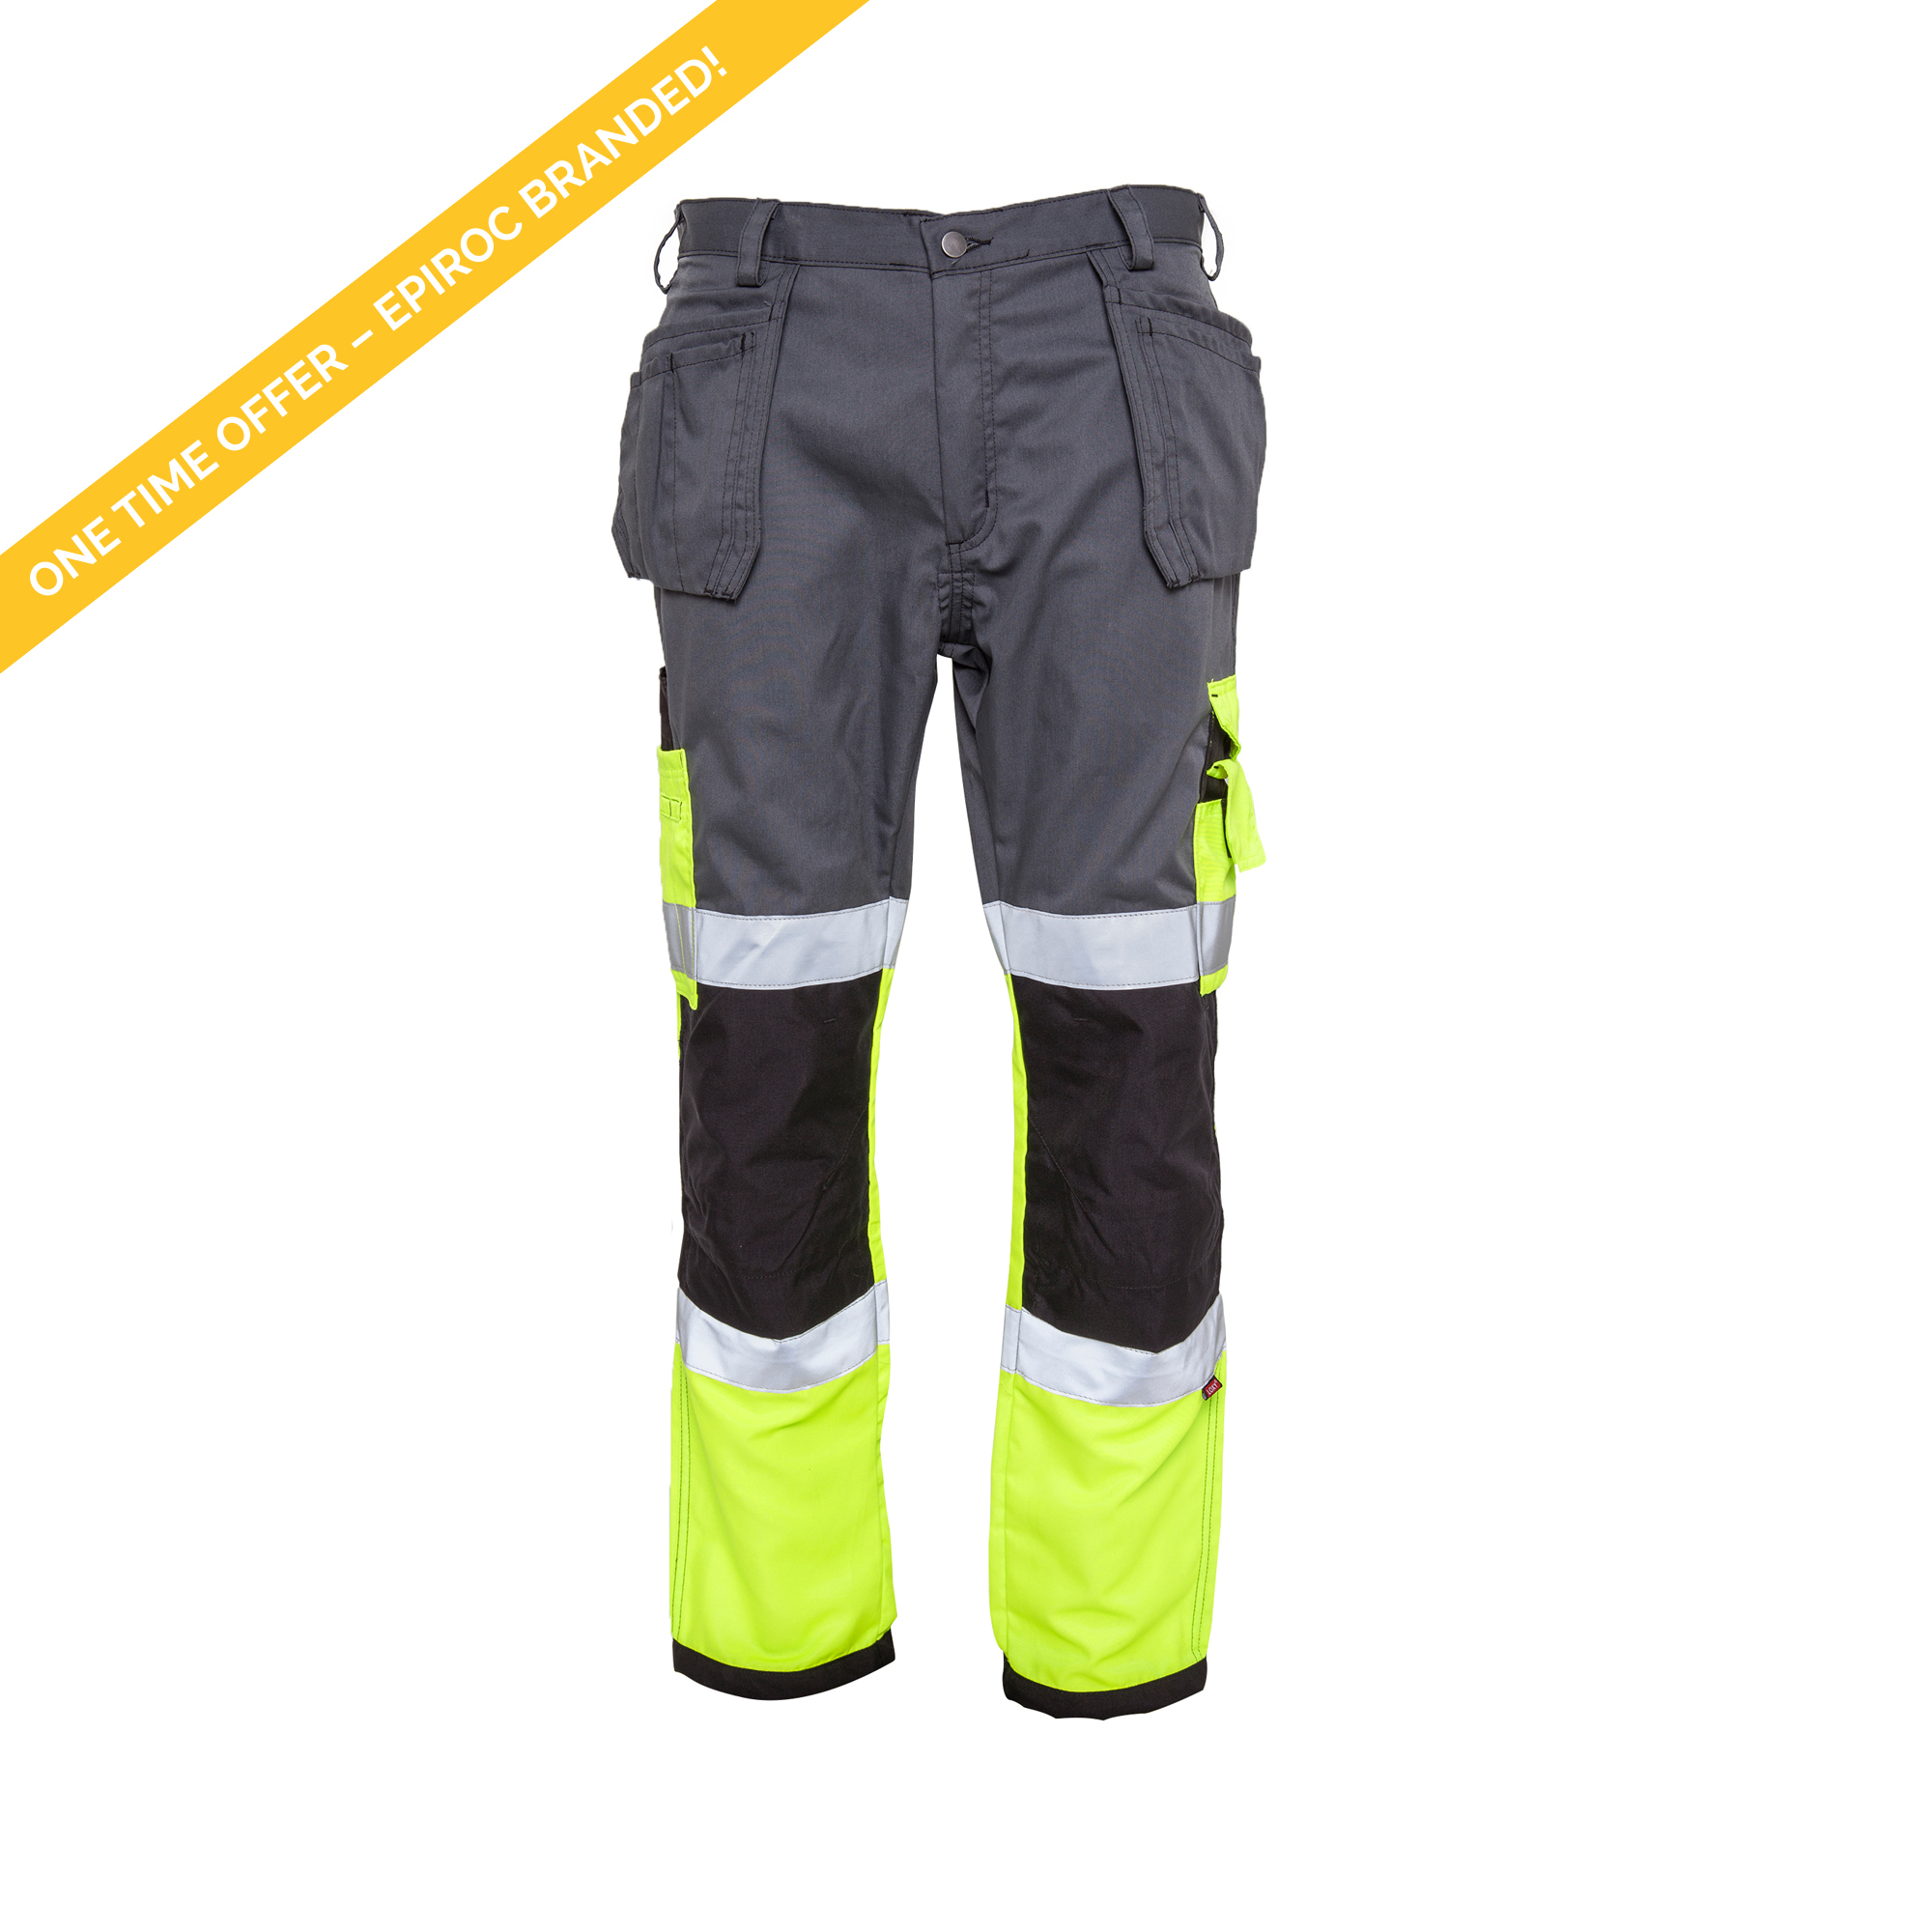 <p>These thin high-visibility trousers are perfect for warmer climates. Equipped with both hanging and leg pockets with several functionalities for everyday use. You can also tuck the hanging pockets behind the usual pocket whenever needed. Added Duratex® fabric for hanging pockets, kneepad areas, and at the ankles which increases durability, usability, and optional use.</p>